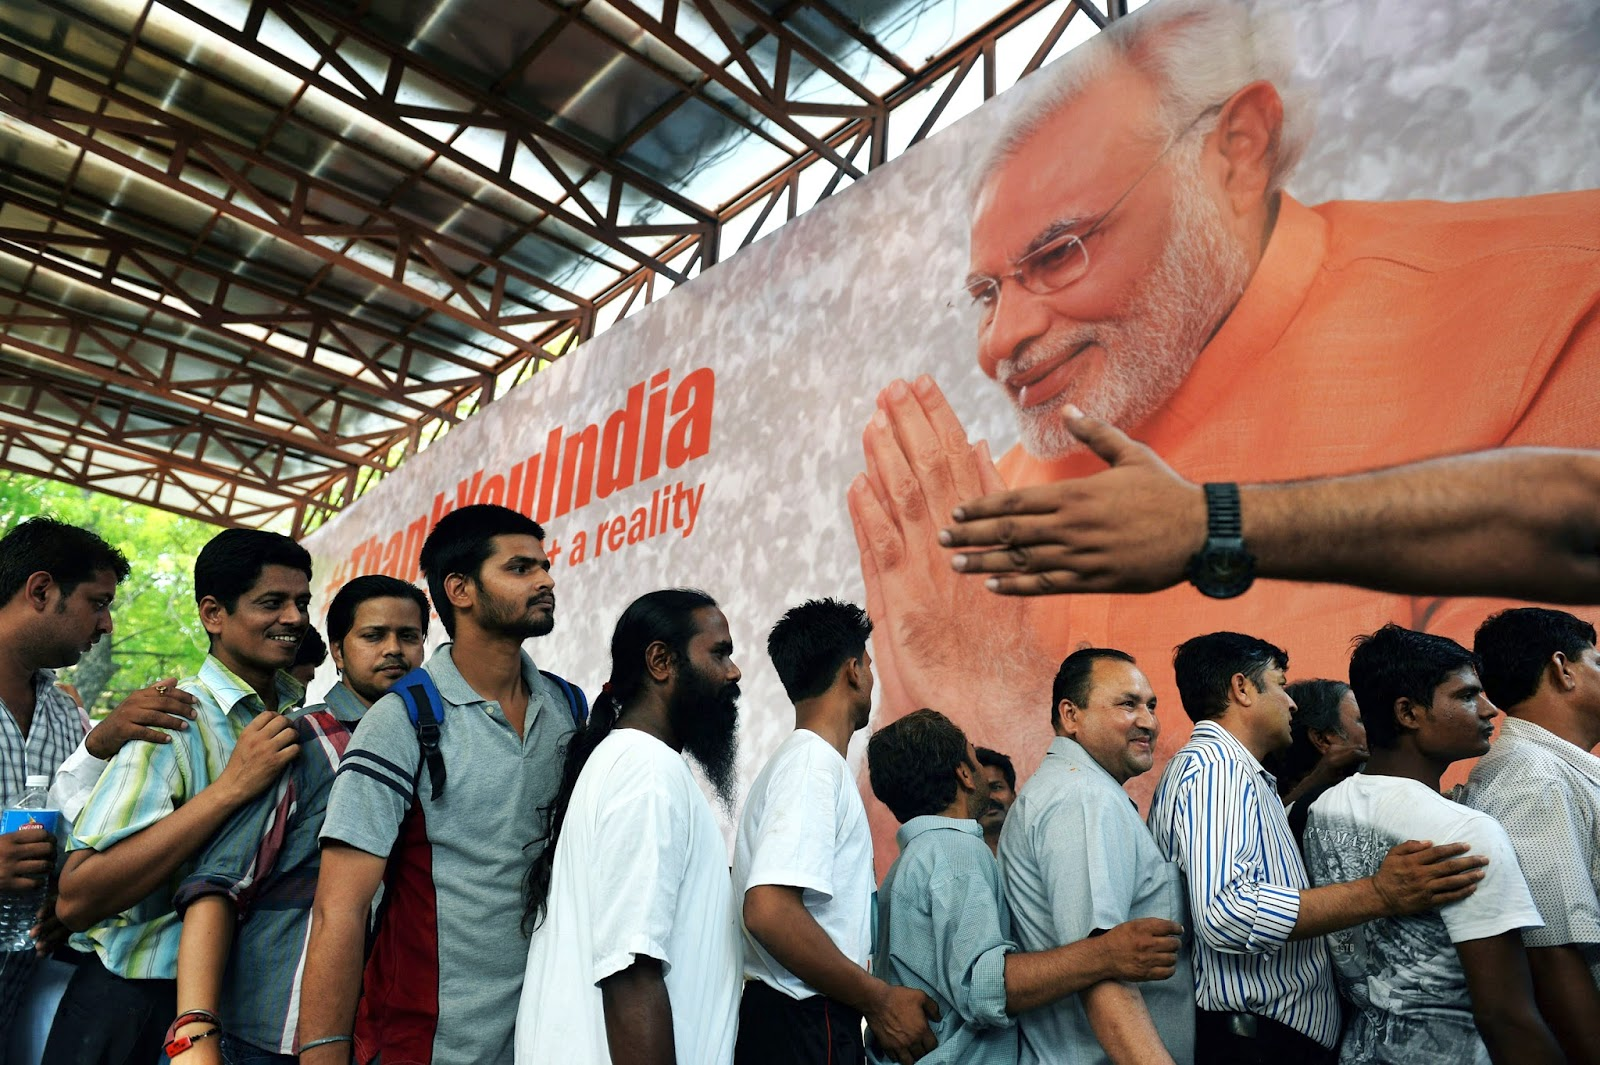 Supporters of Narendra Modi stand in line to get free t-shirts at the Bharatiya Janata Party headquarters in New Delhi on May 16, 2014. (Credit: Roberto Schmidt/AFP via Getty Images) Click to enlarge.